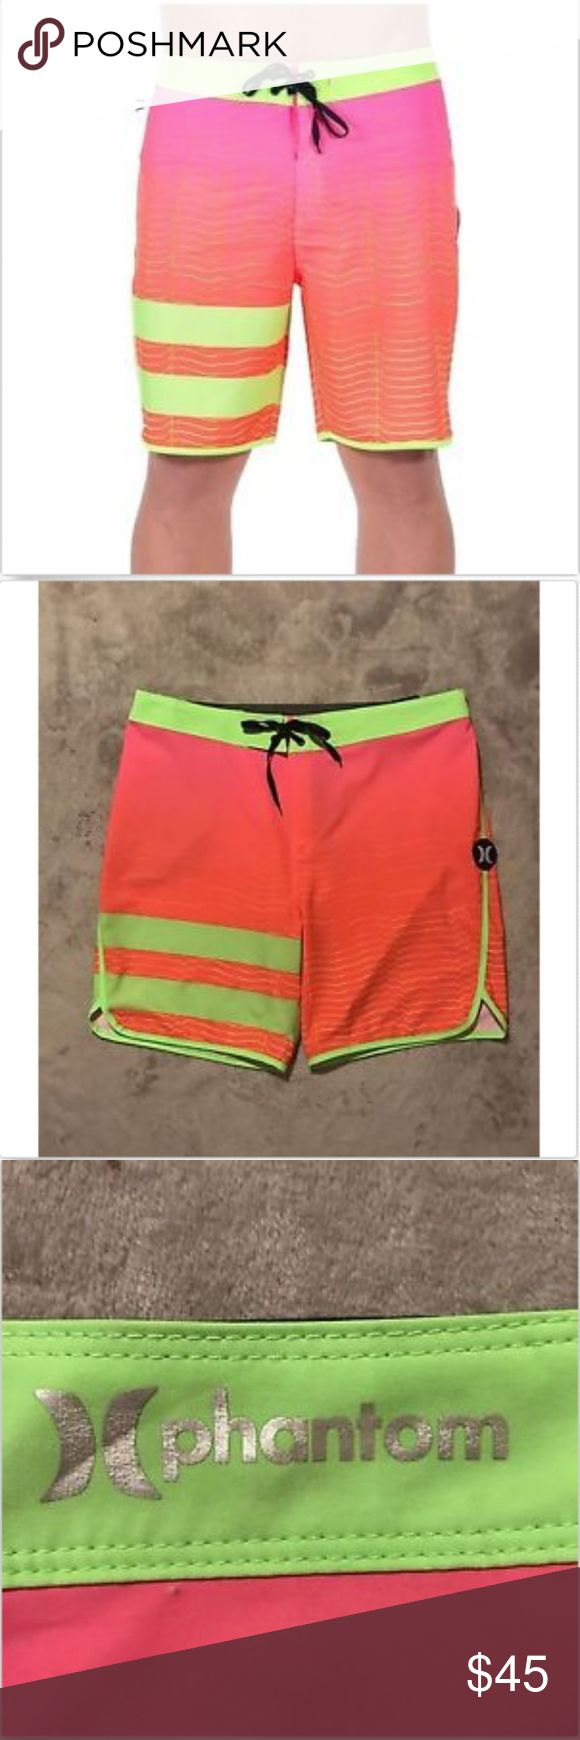 """NWT Hurley Mens Size 34 Phantom Block Party Speed NWT Hurley Mens Size 34 Phantom Block Party Speed 18"""" Inseam Swim Board Shorts   Condition: excellent brand new condition, There doesn't appear to be any stains tears or holes, pilling, fraying or snags. Hurley Swim Board Shorts"""